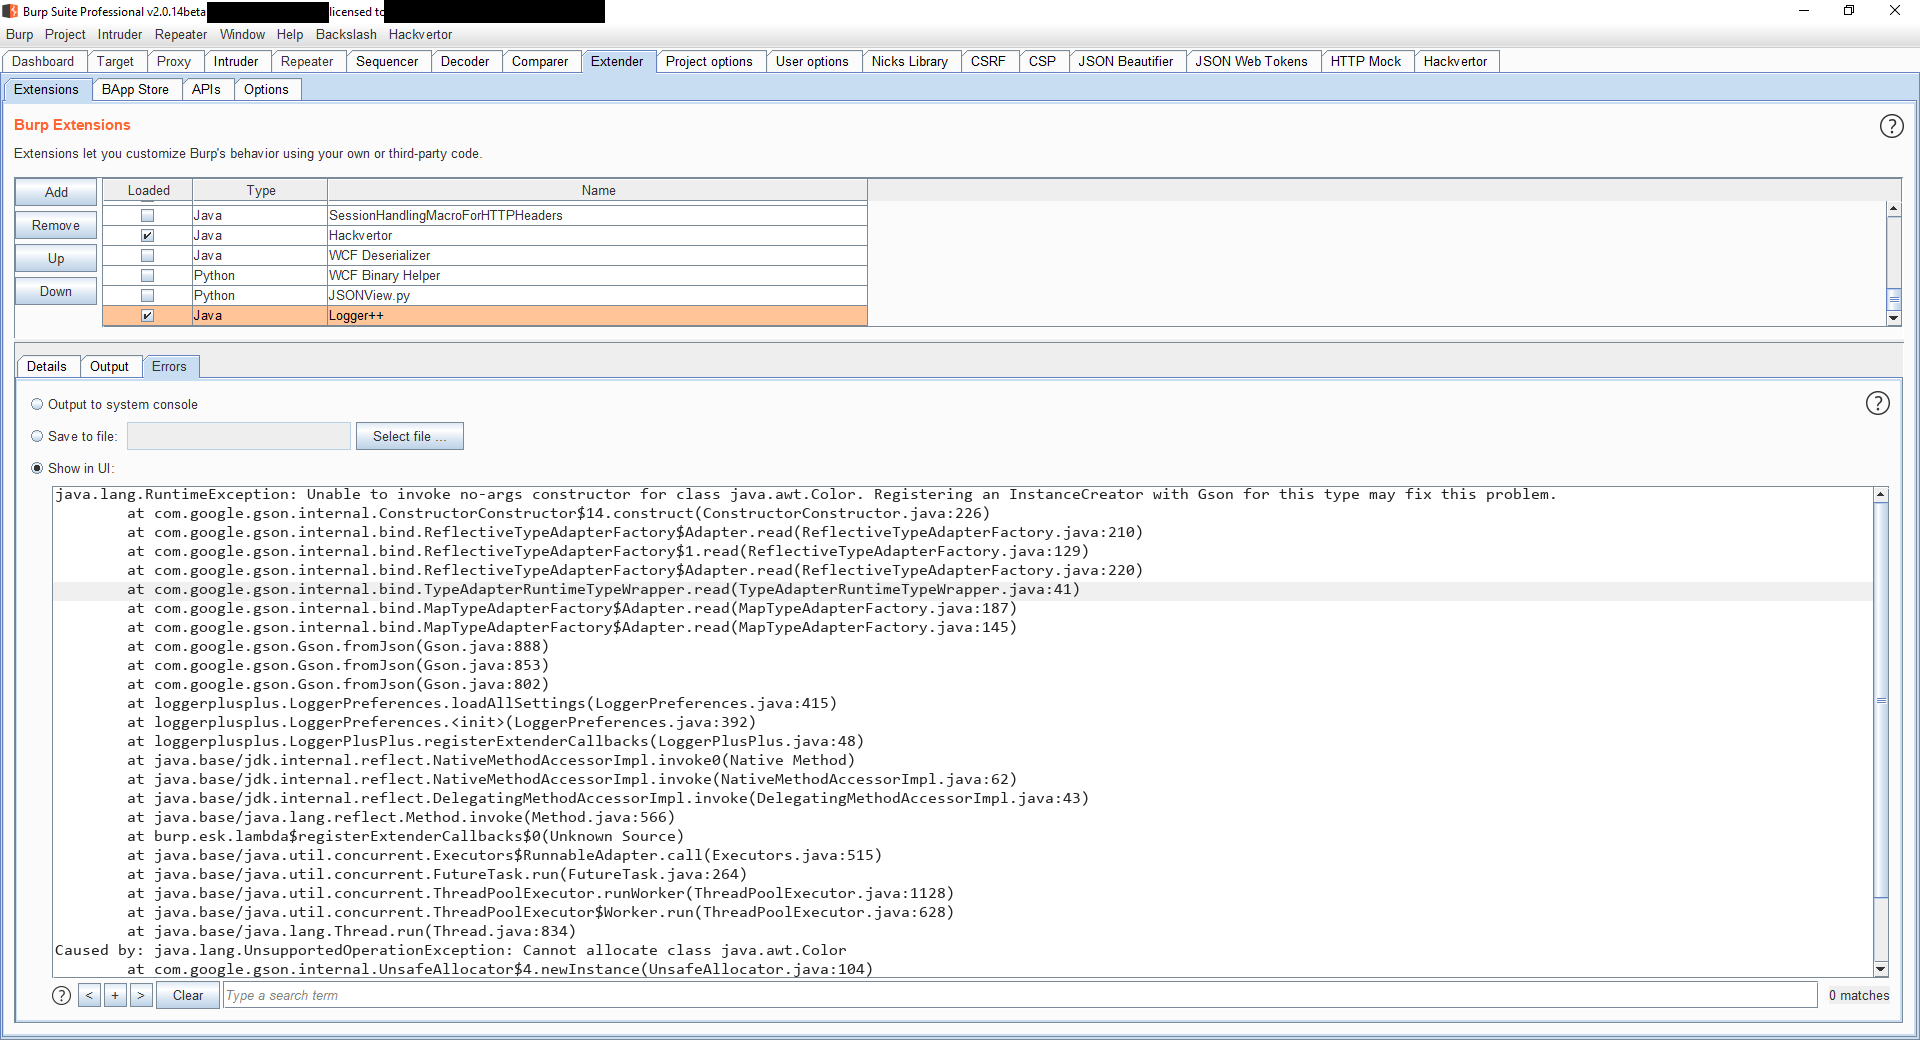 Logger++ Exception Upon Install in Burp Suite 2 0 14beta · Issue #65